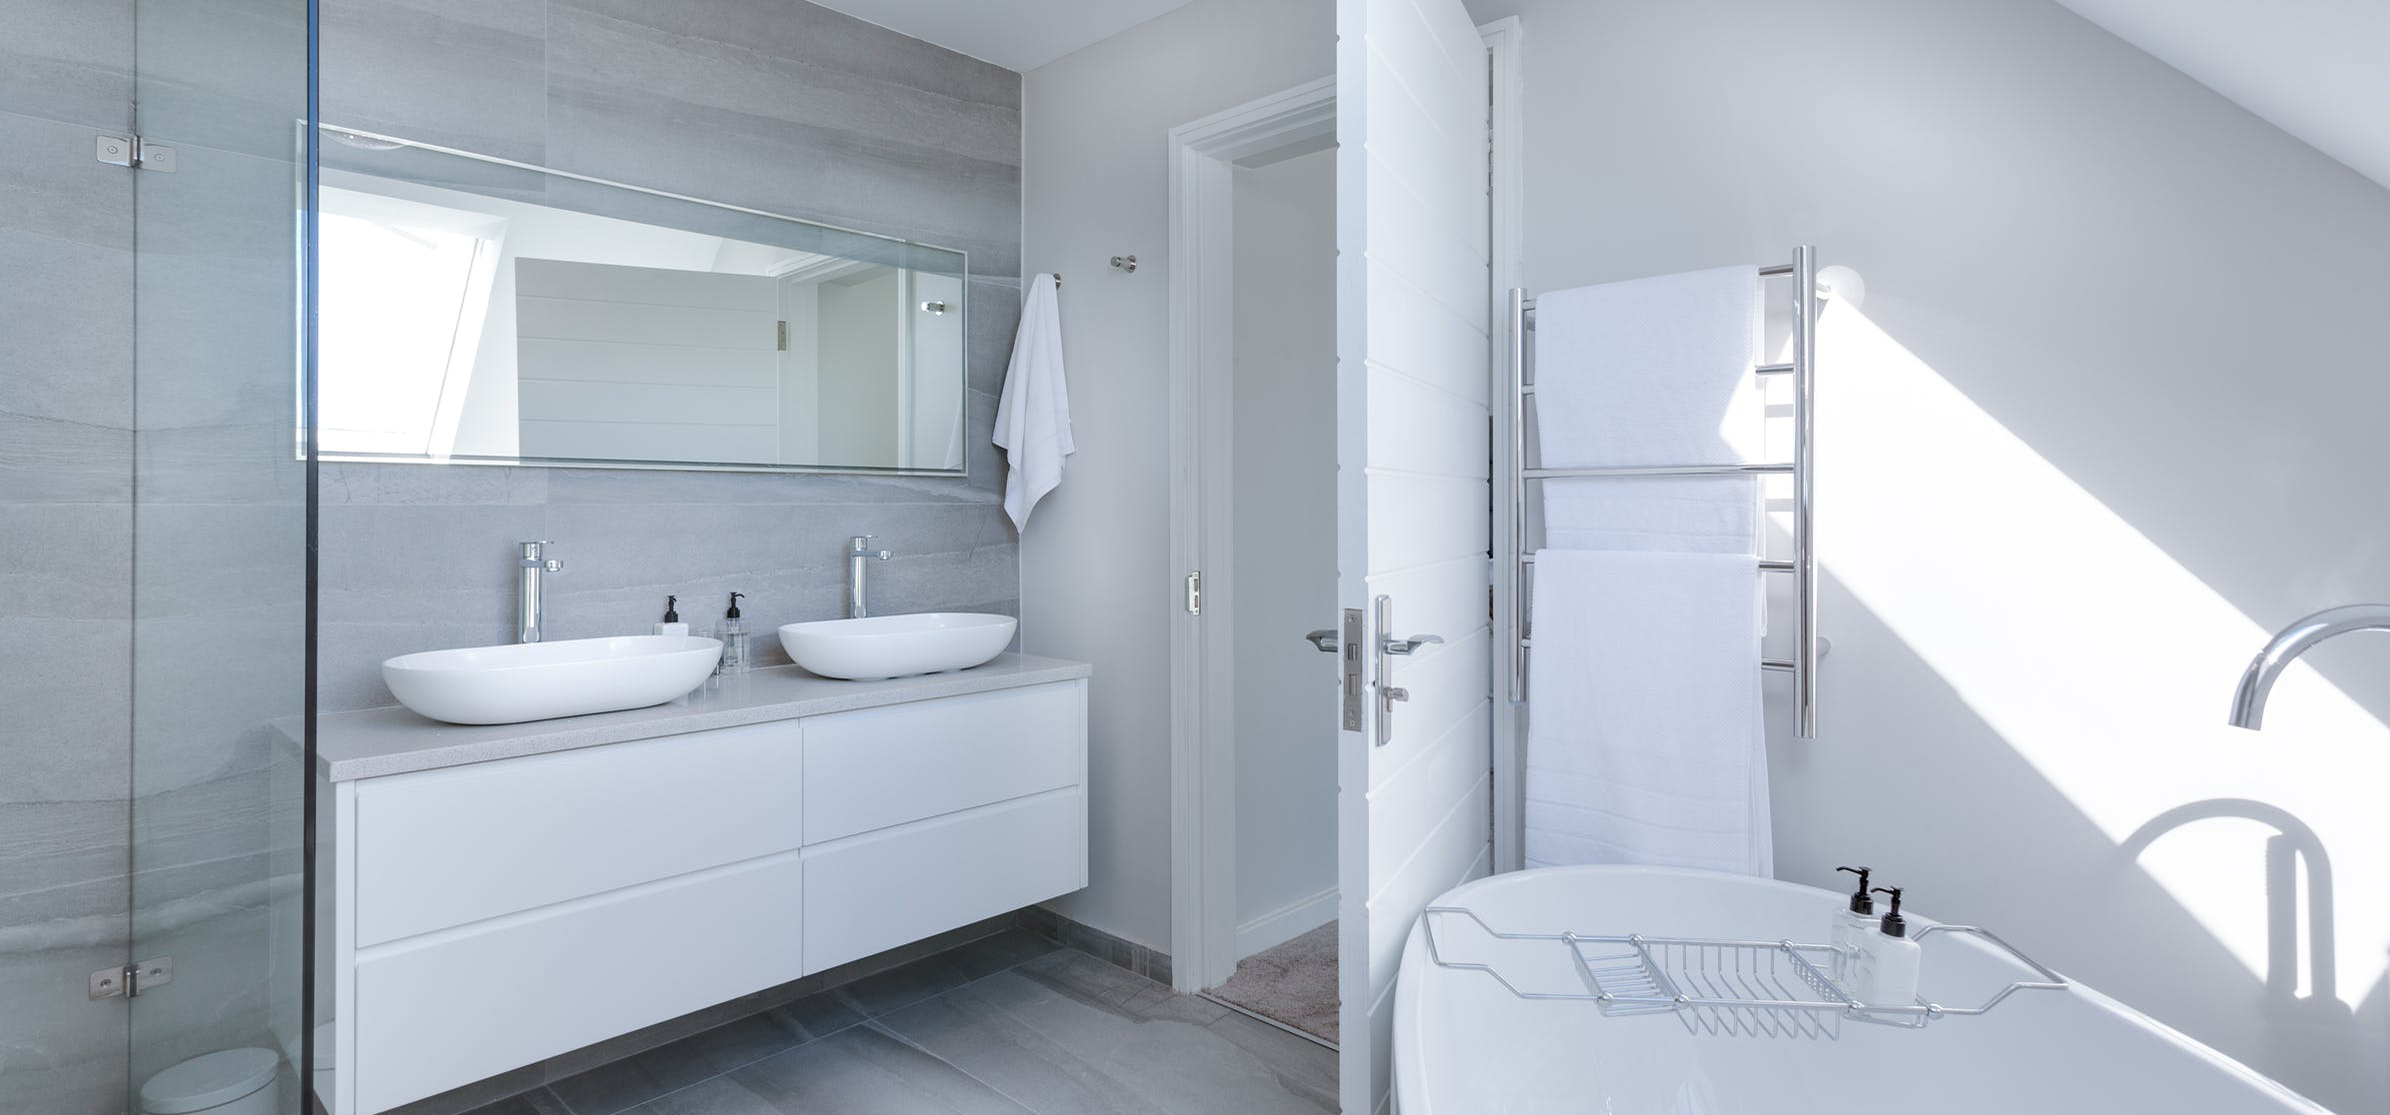 How Long Does Caulking Take To Dry In A Bathroom how long does a bathroom renovation take? | service.au